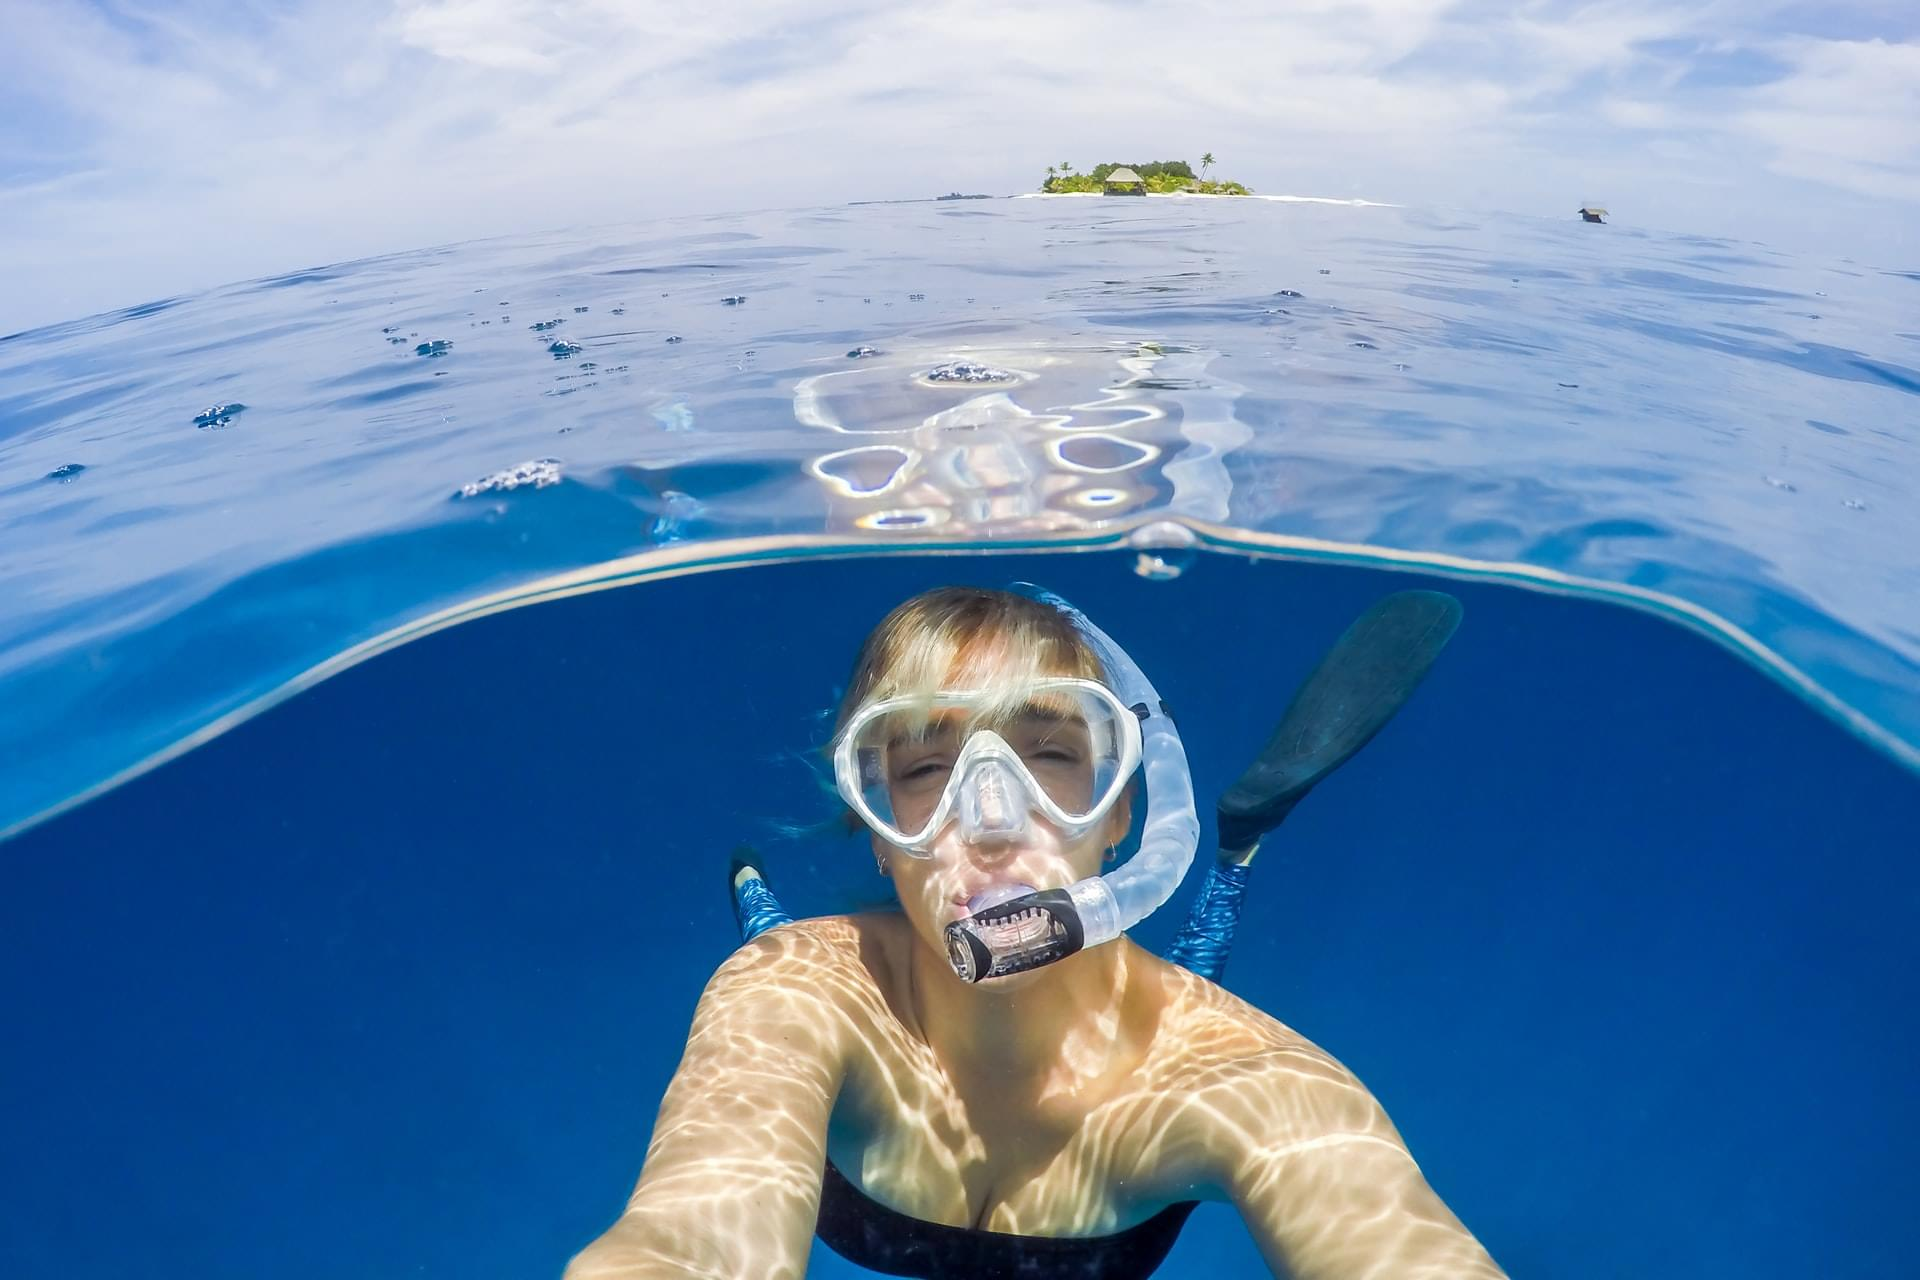 How to snorkel with glasses